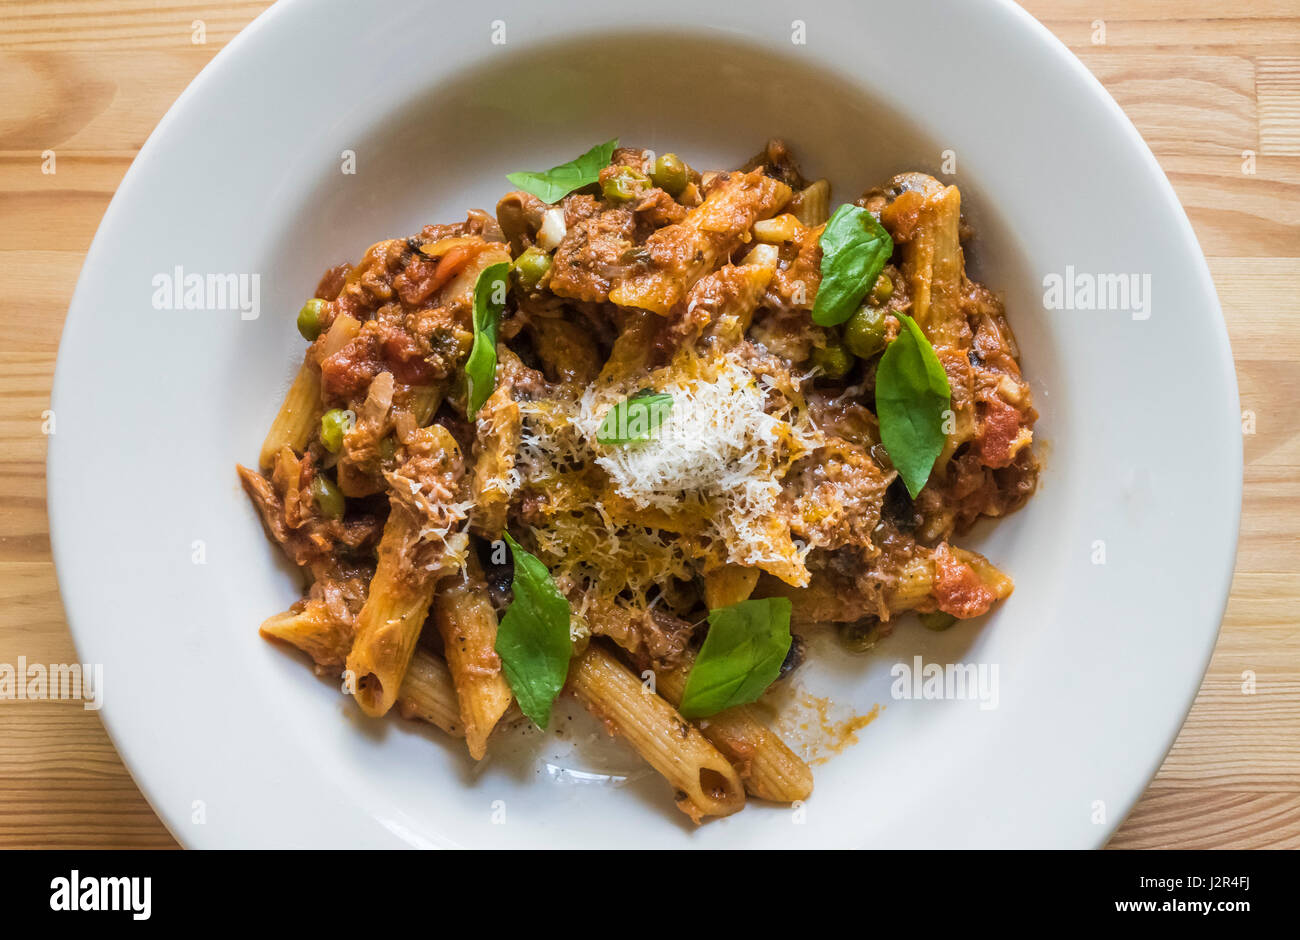 Penne pasta with chicken, mushrooms, green peas, basil, and tomatoes - Stock Image